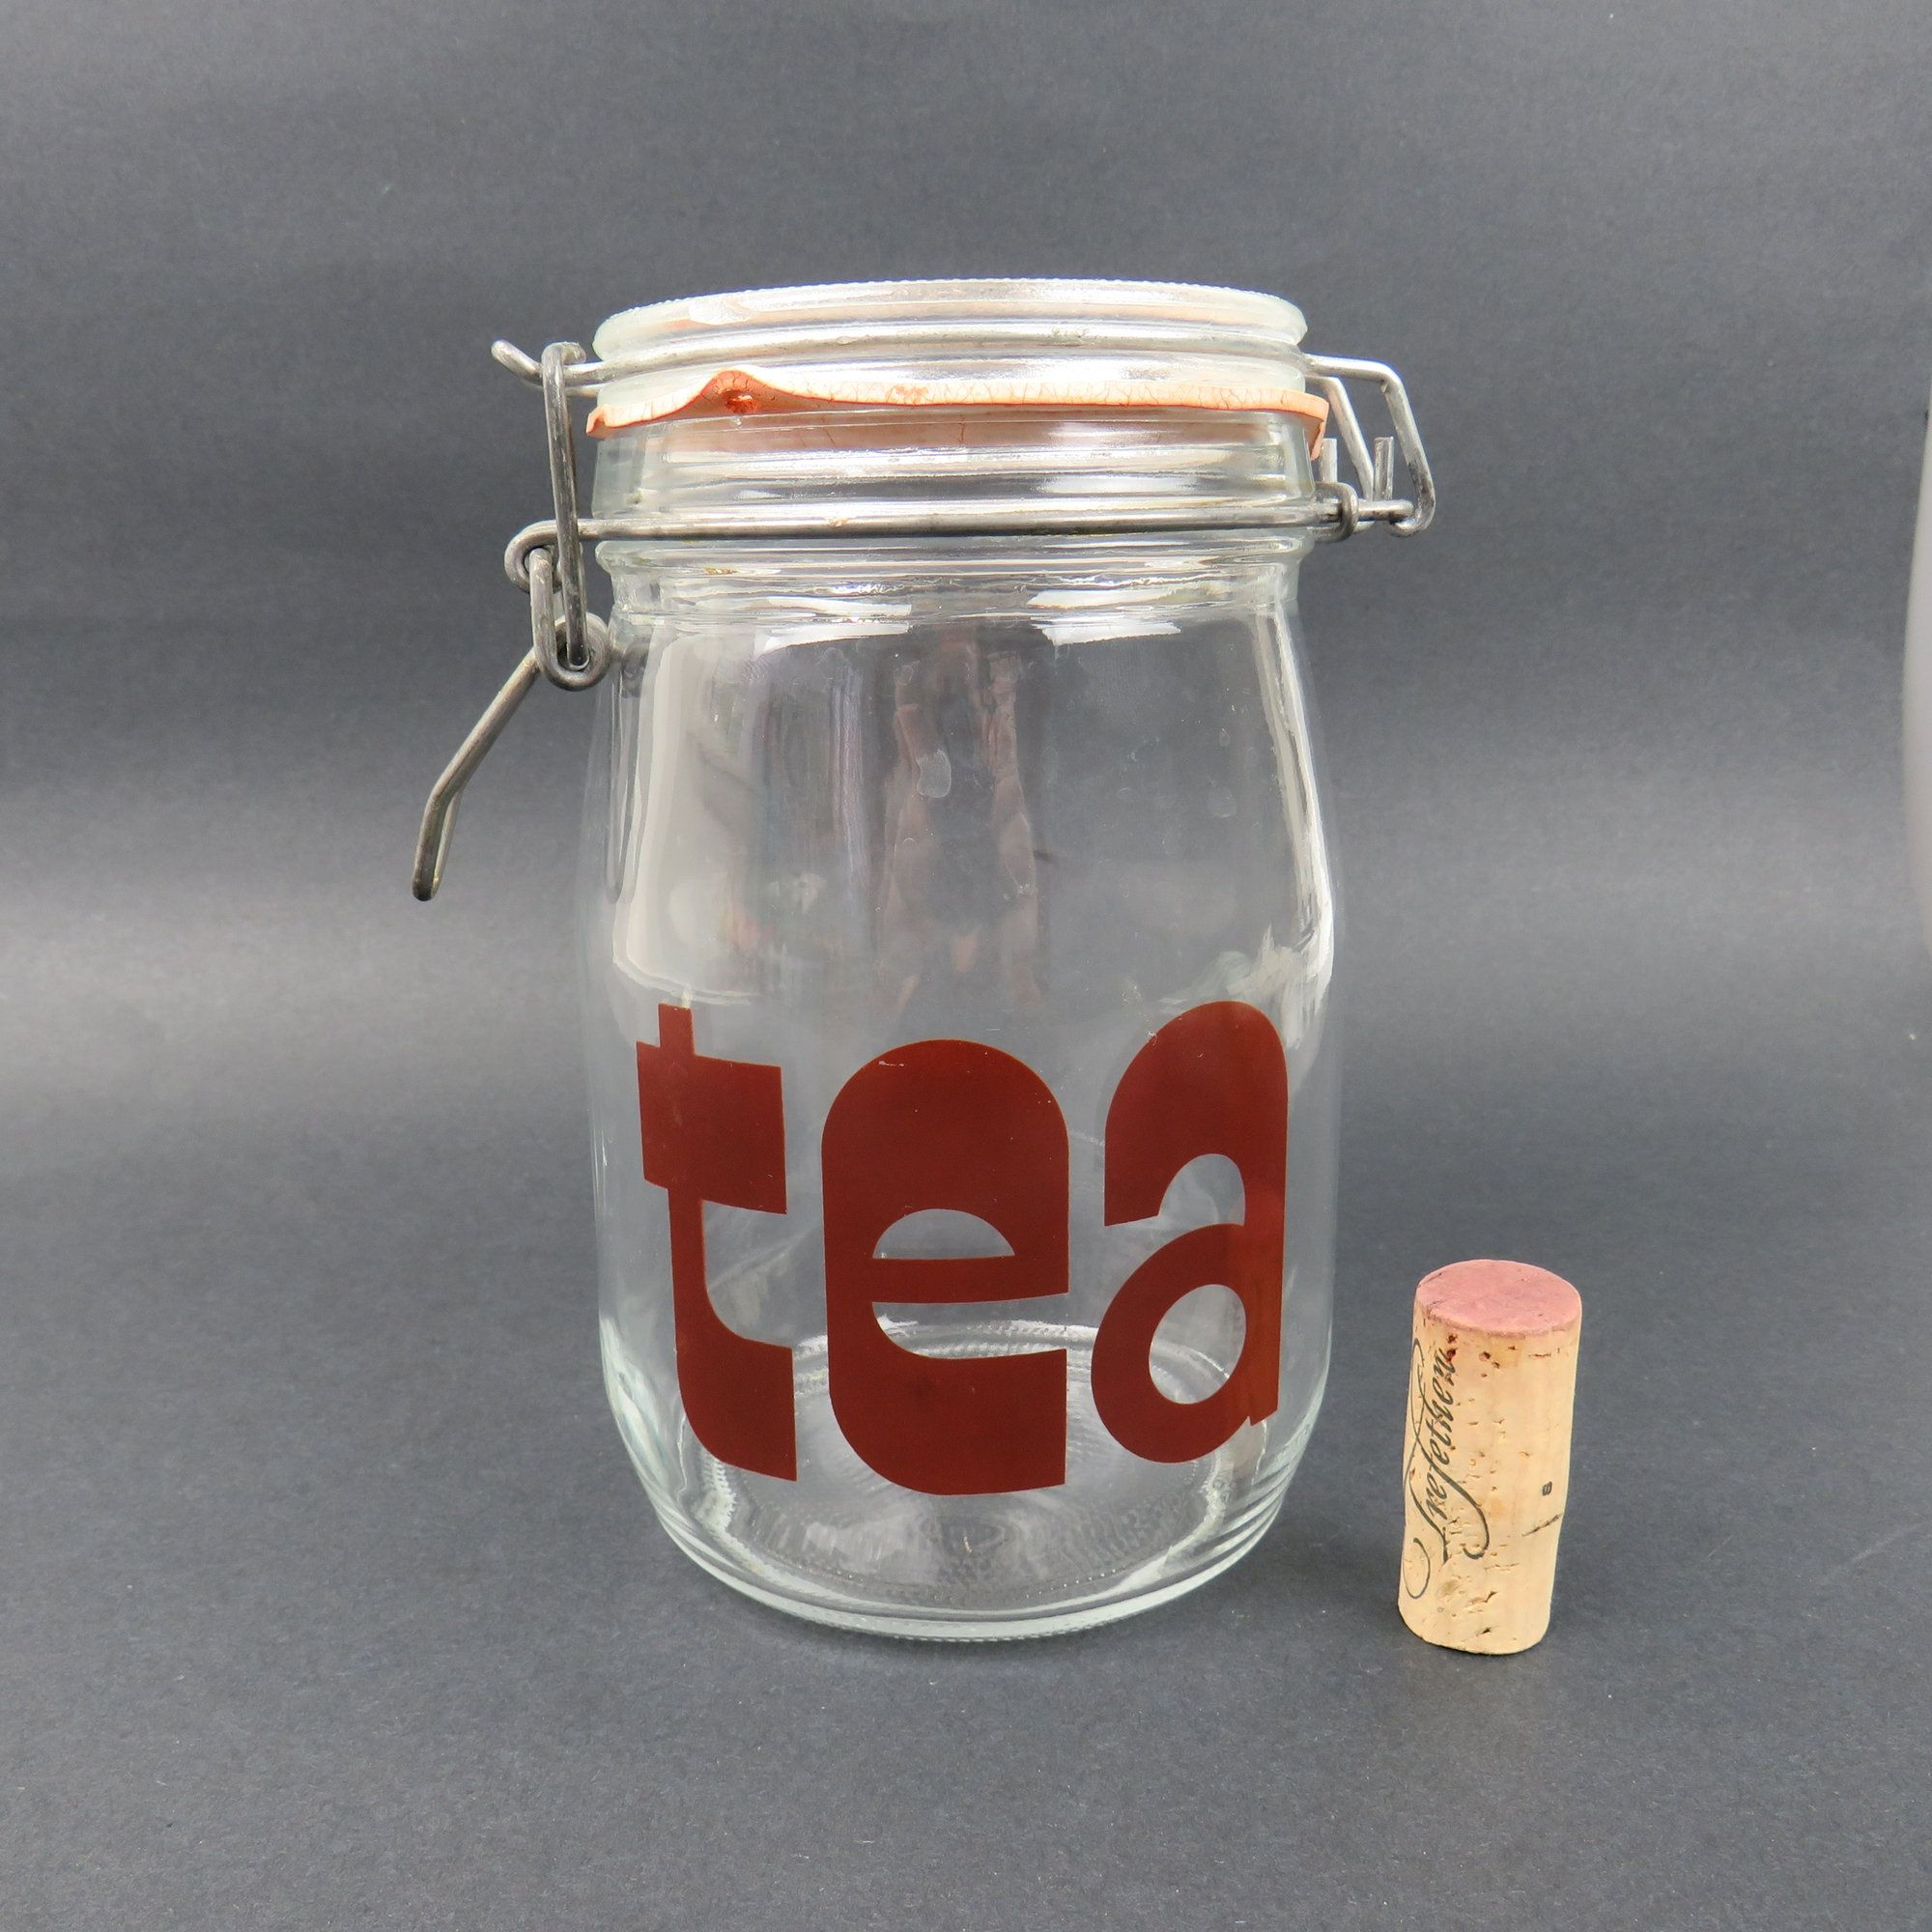 Vintage Typographic Tea Glass Canister Jar 1 Liter With Metal Wire Bale Flip Top Mason Jar Kitchen Storag Glass Canister Jars Mason Jar Kitchen Glass Canisters